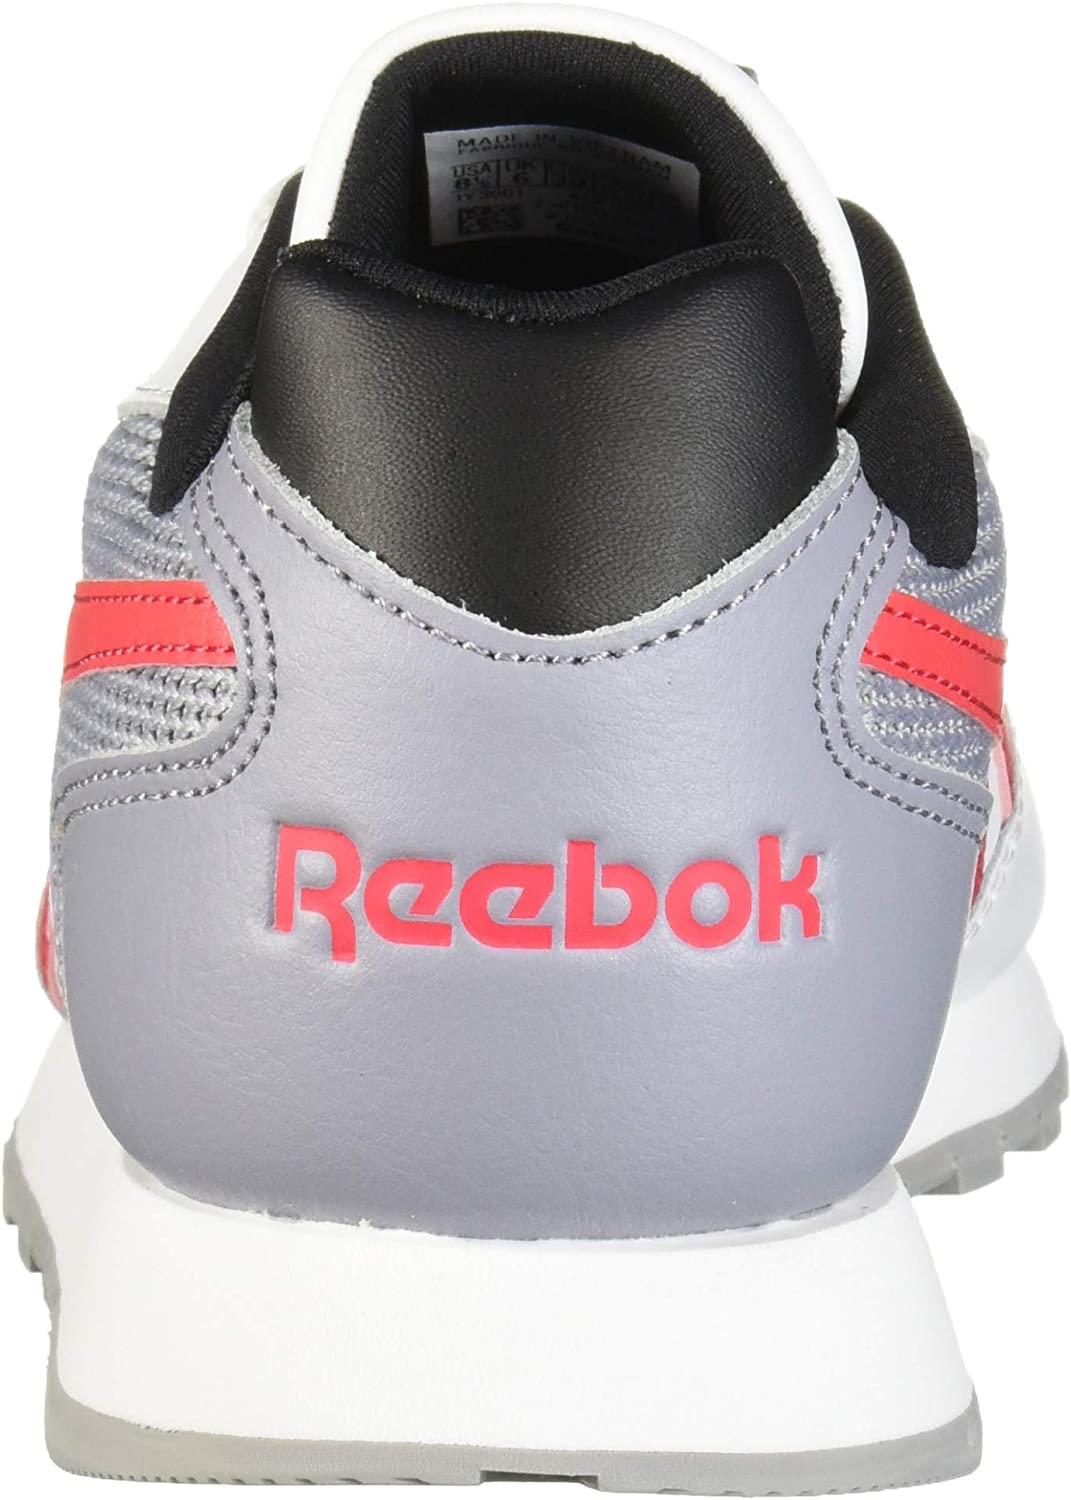 Reebok Women's Classic Harman Run Sneaker White Shadow Pink Black wL77hR